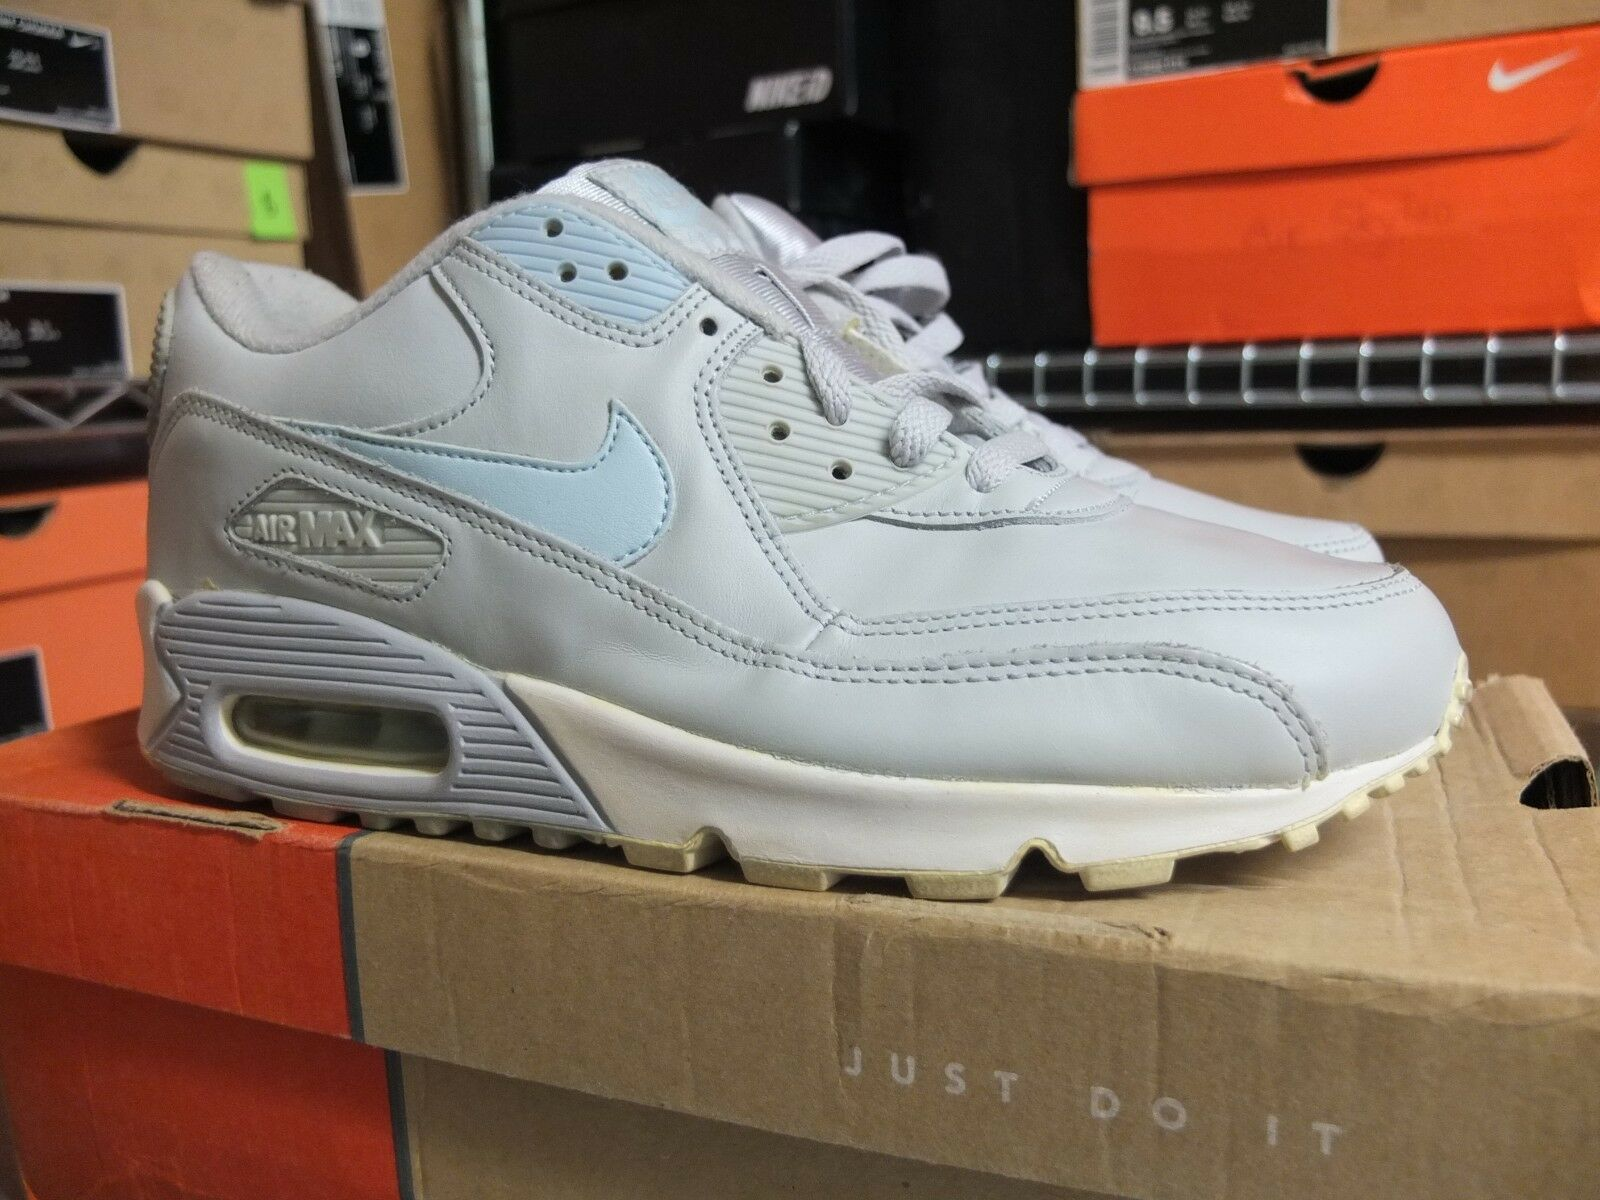 2003 WMNS Nike Air Max 90 Leather WMNS US11 homme US9.5 Used Patta Kaws Atmos